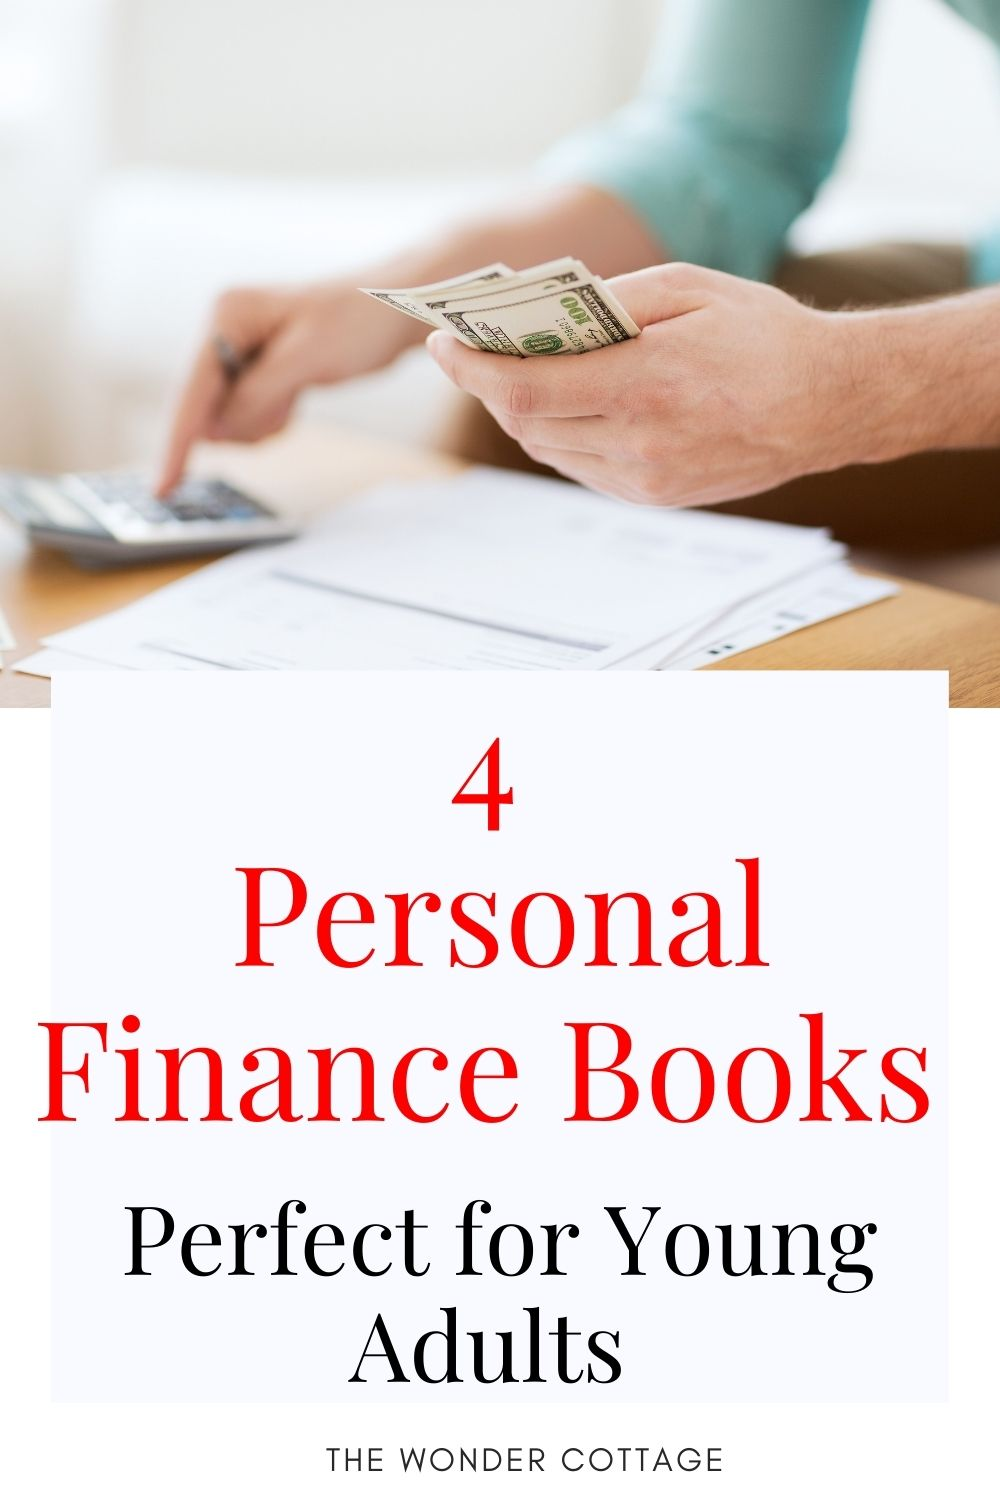 4 personal finance books perfect for young adults